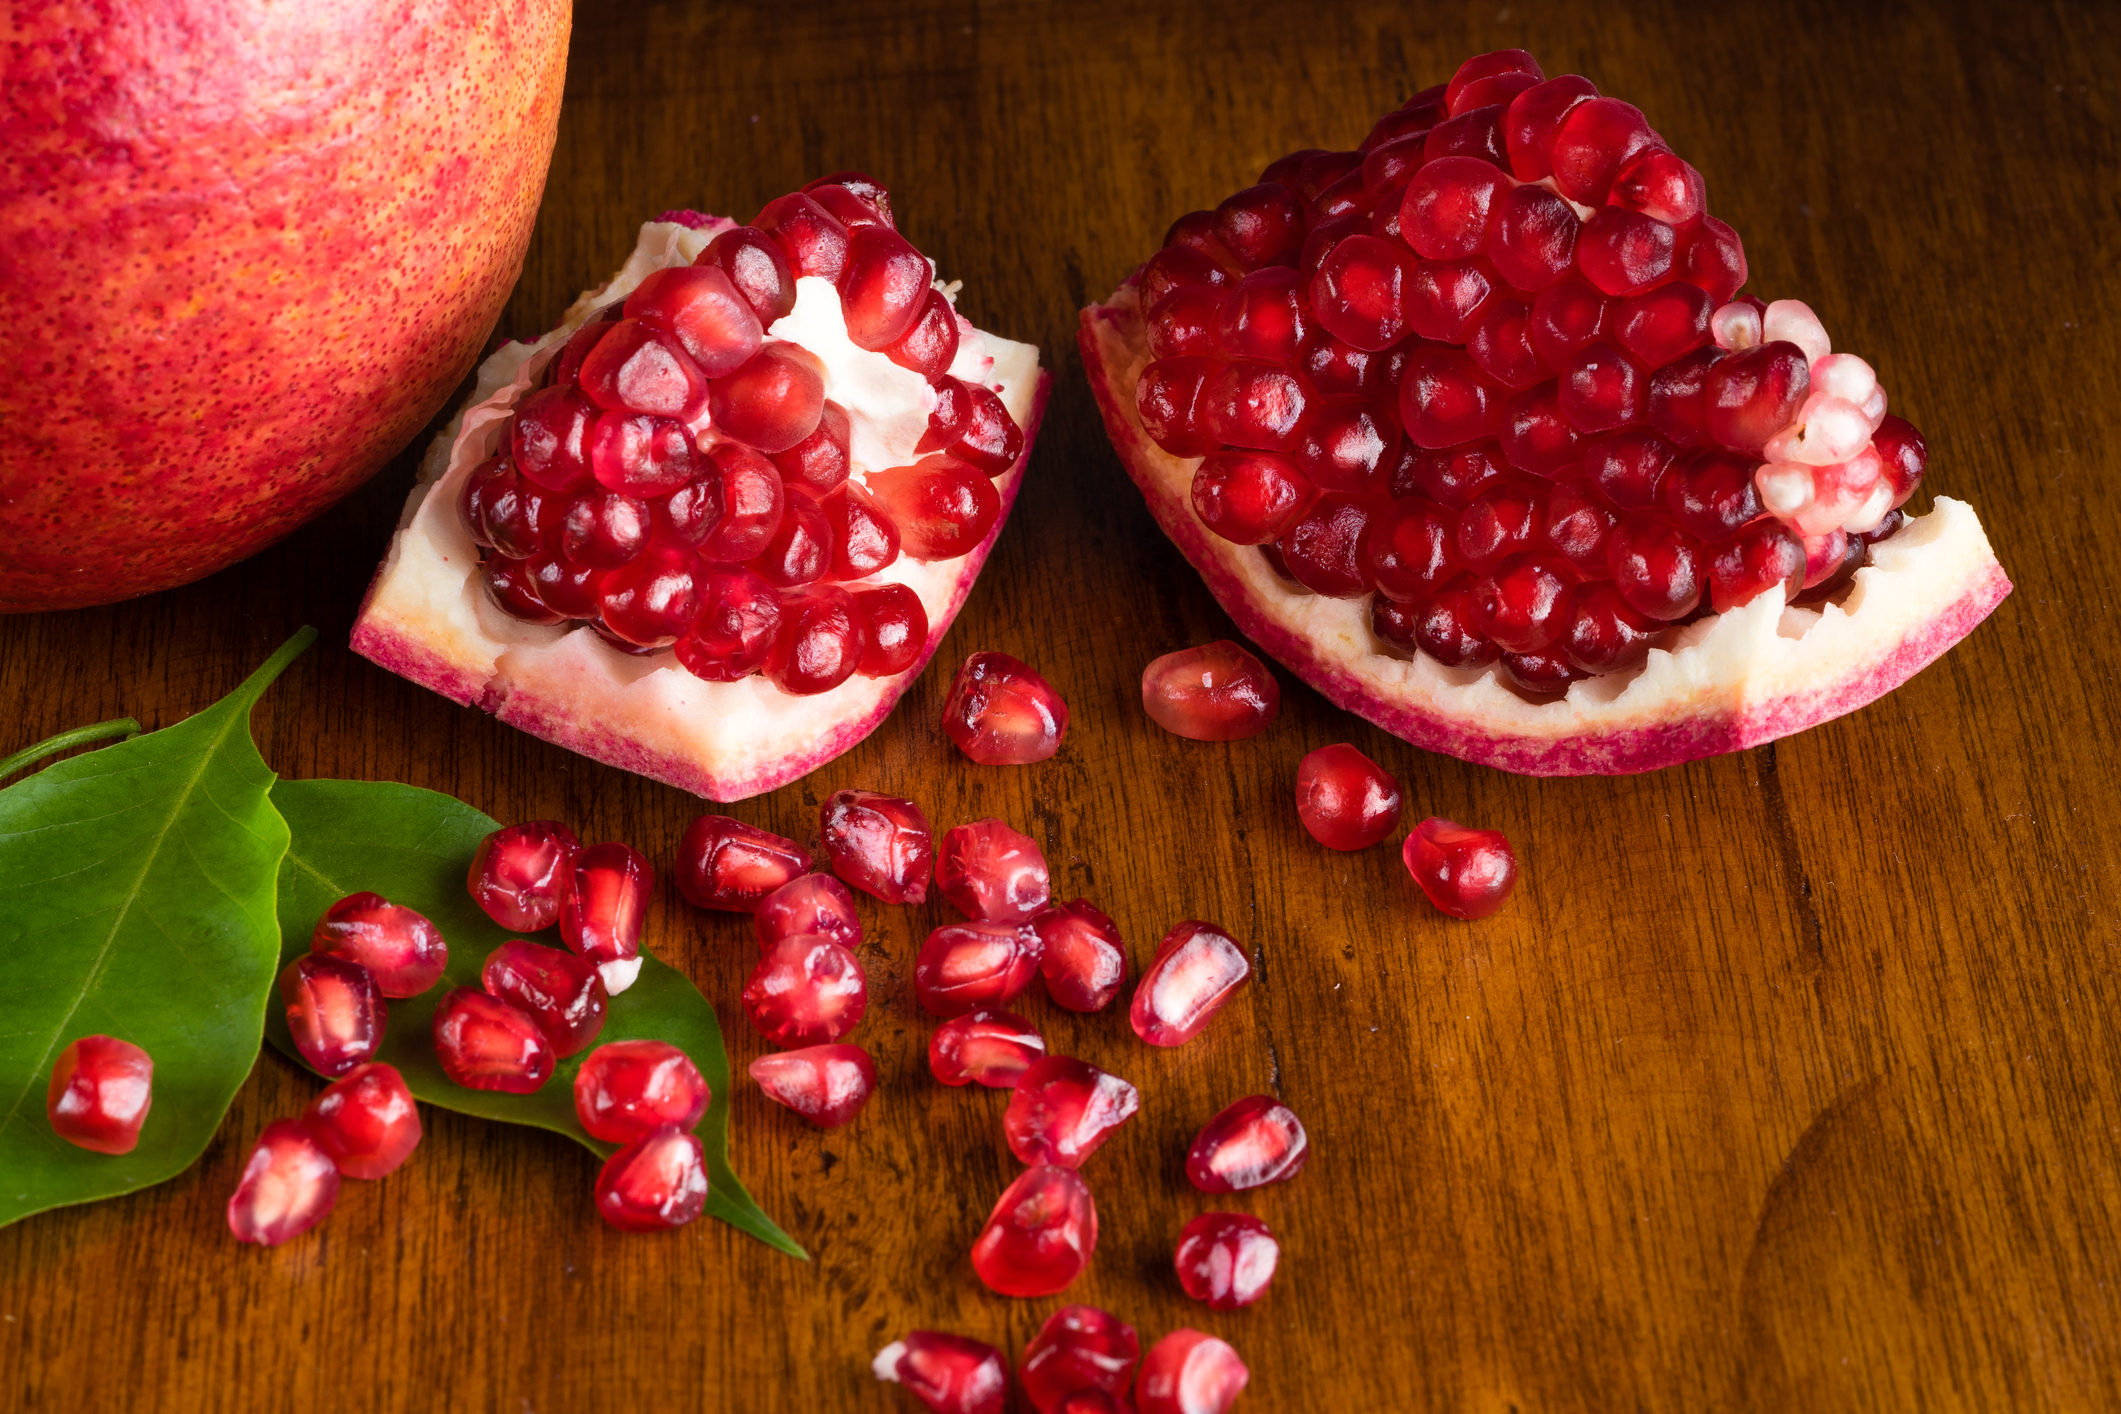 Pomegrante_fruits_insides